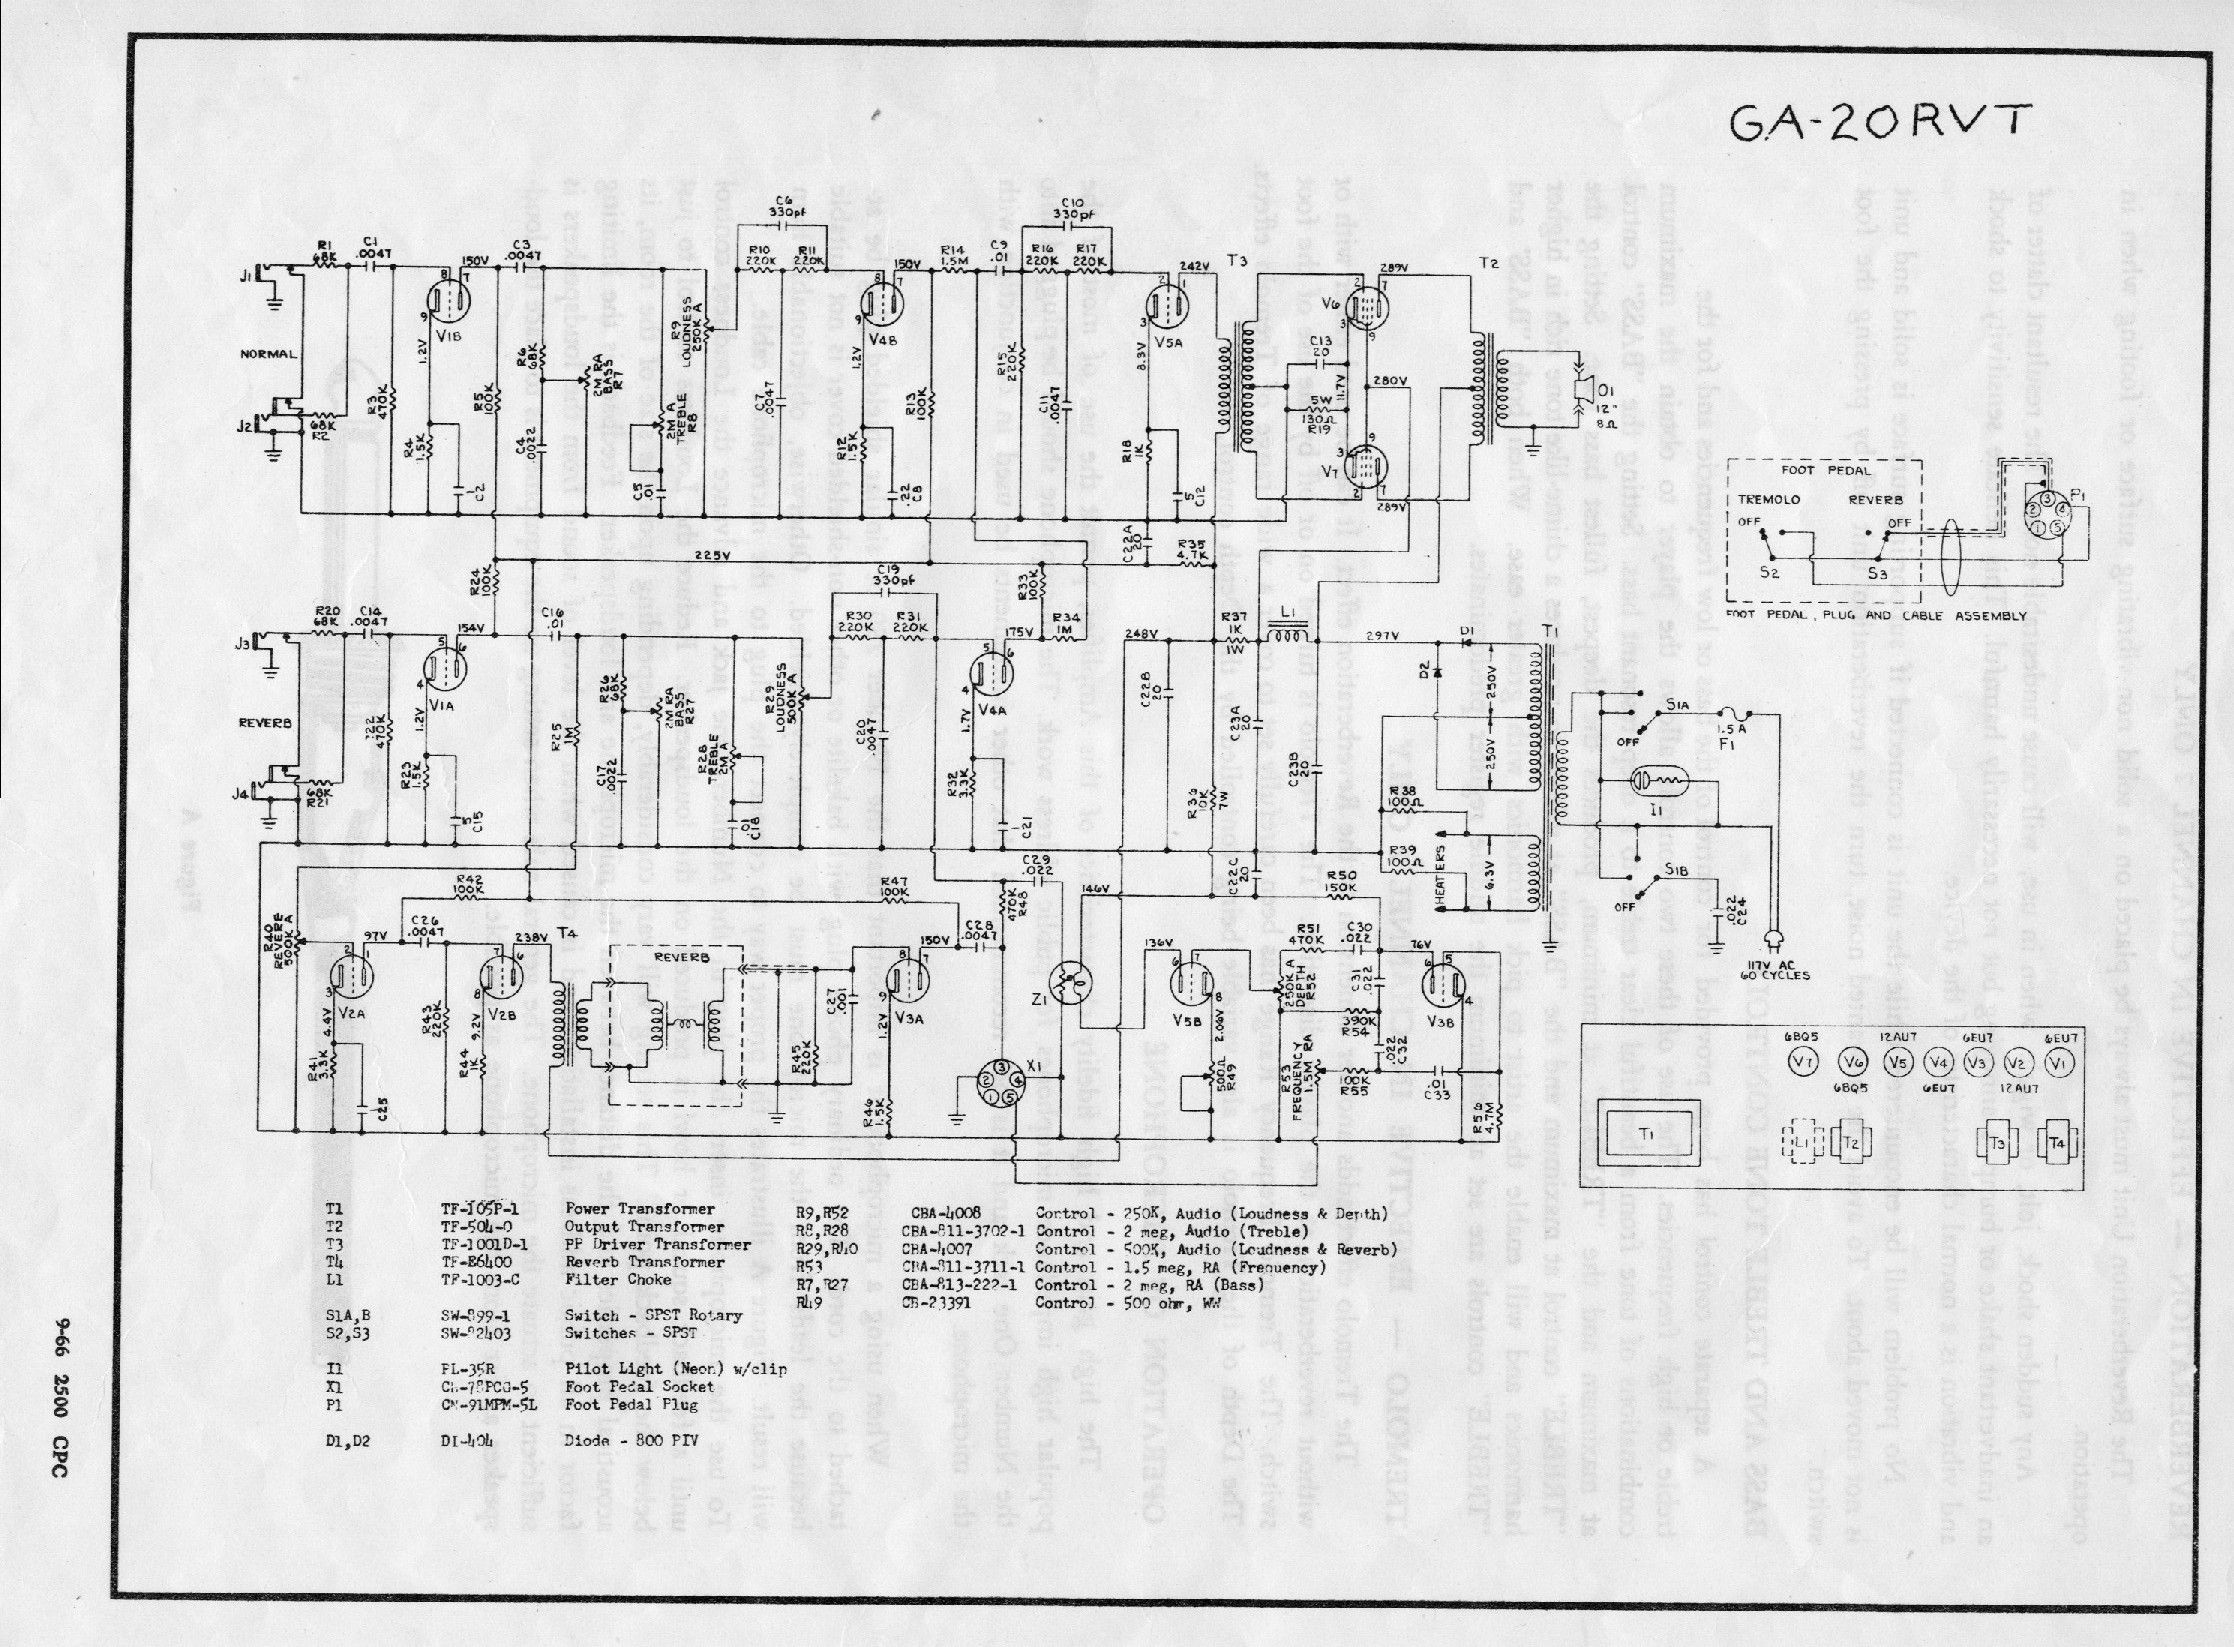 Schematics For Gibson Minuteman Ga 20rvt